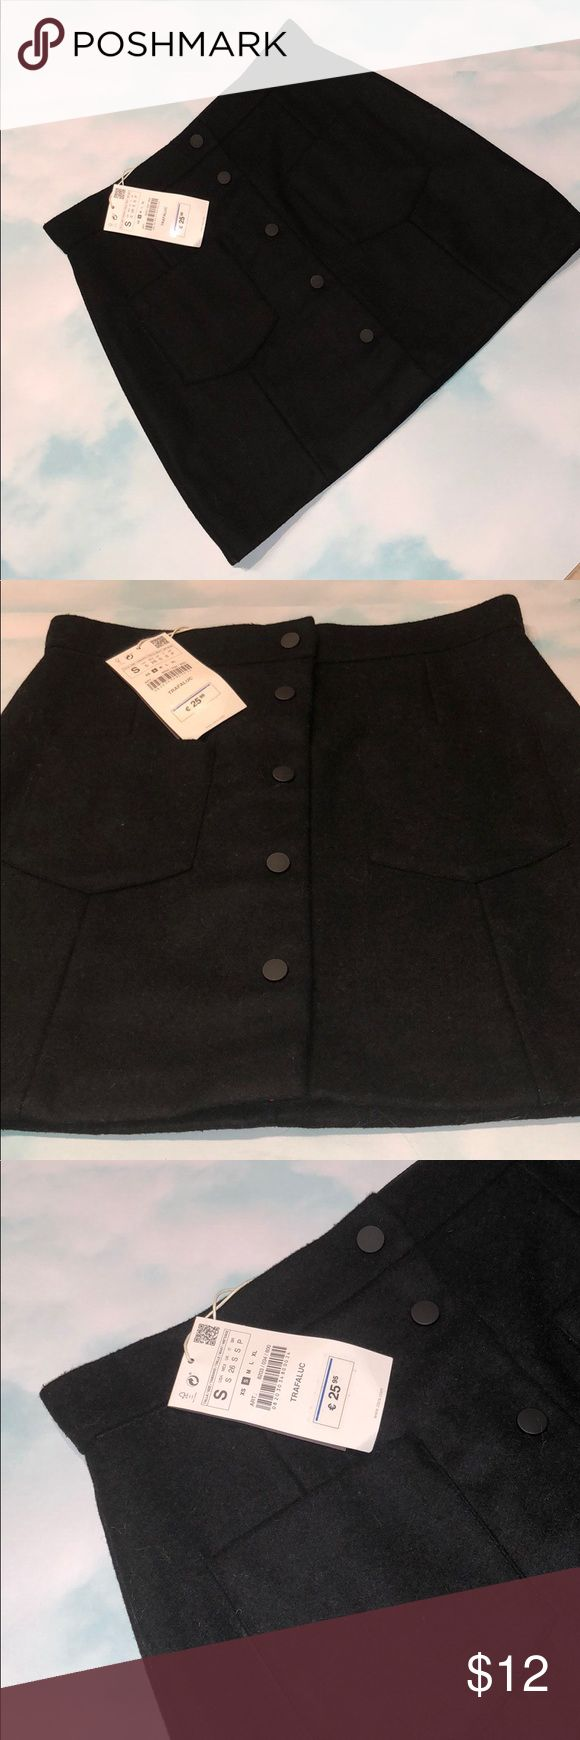 ZARA BLACK WOOL MINI SKIRT Zara Black Wool Mini Skirt With Buttons in Front and 2 Pockets. New With Tags. Size Small. Zara Skirts Mini